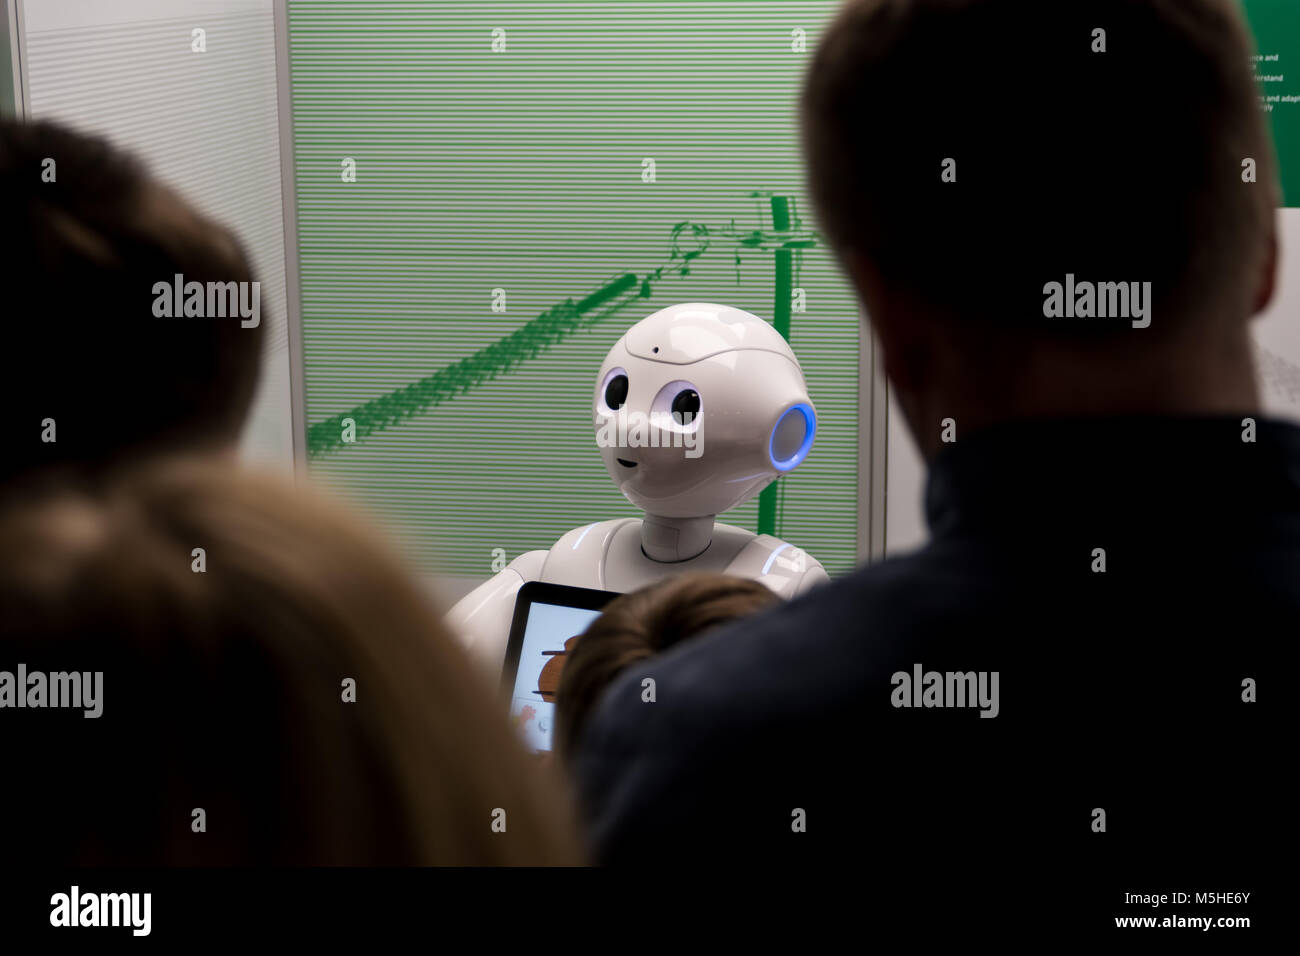 People looking at a robot looking at people - Stock Image